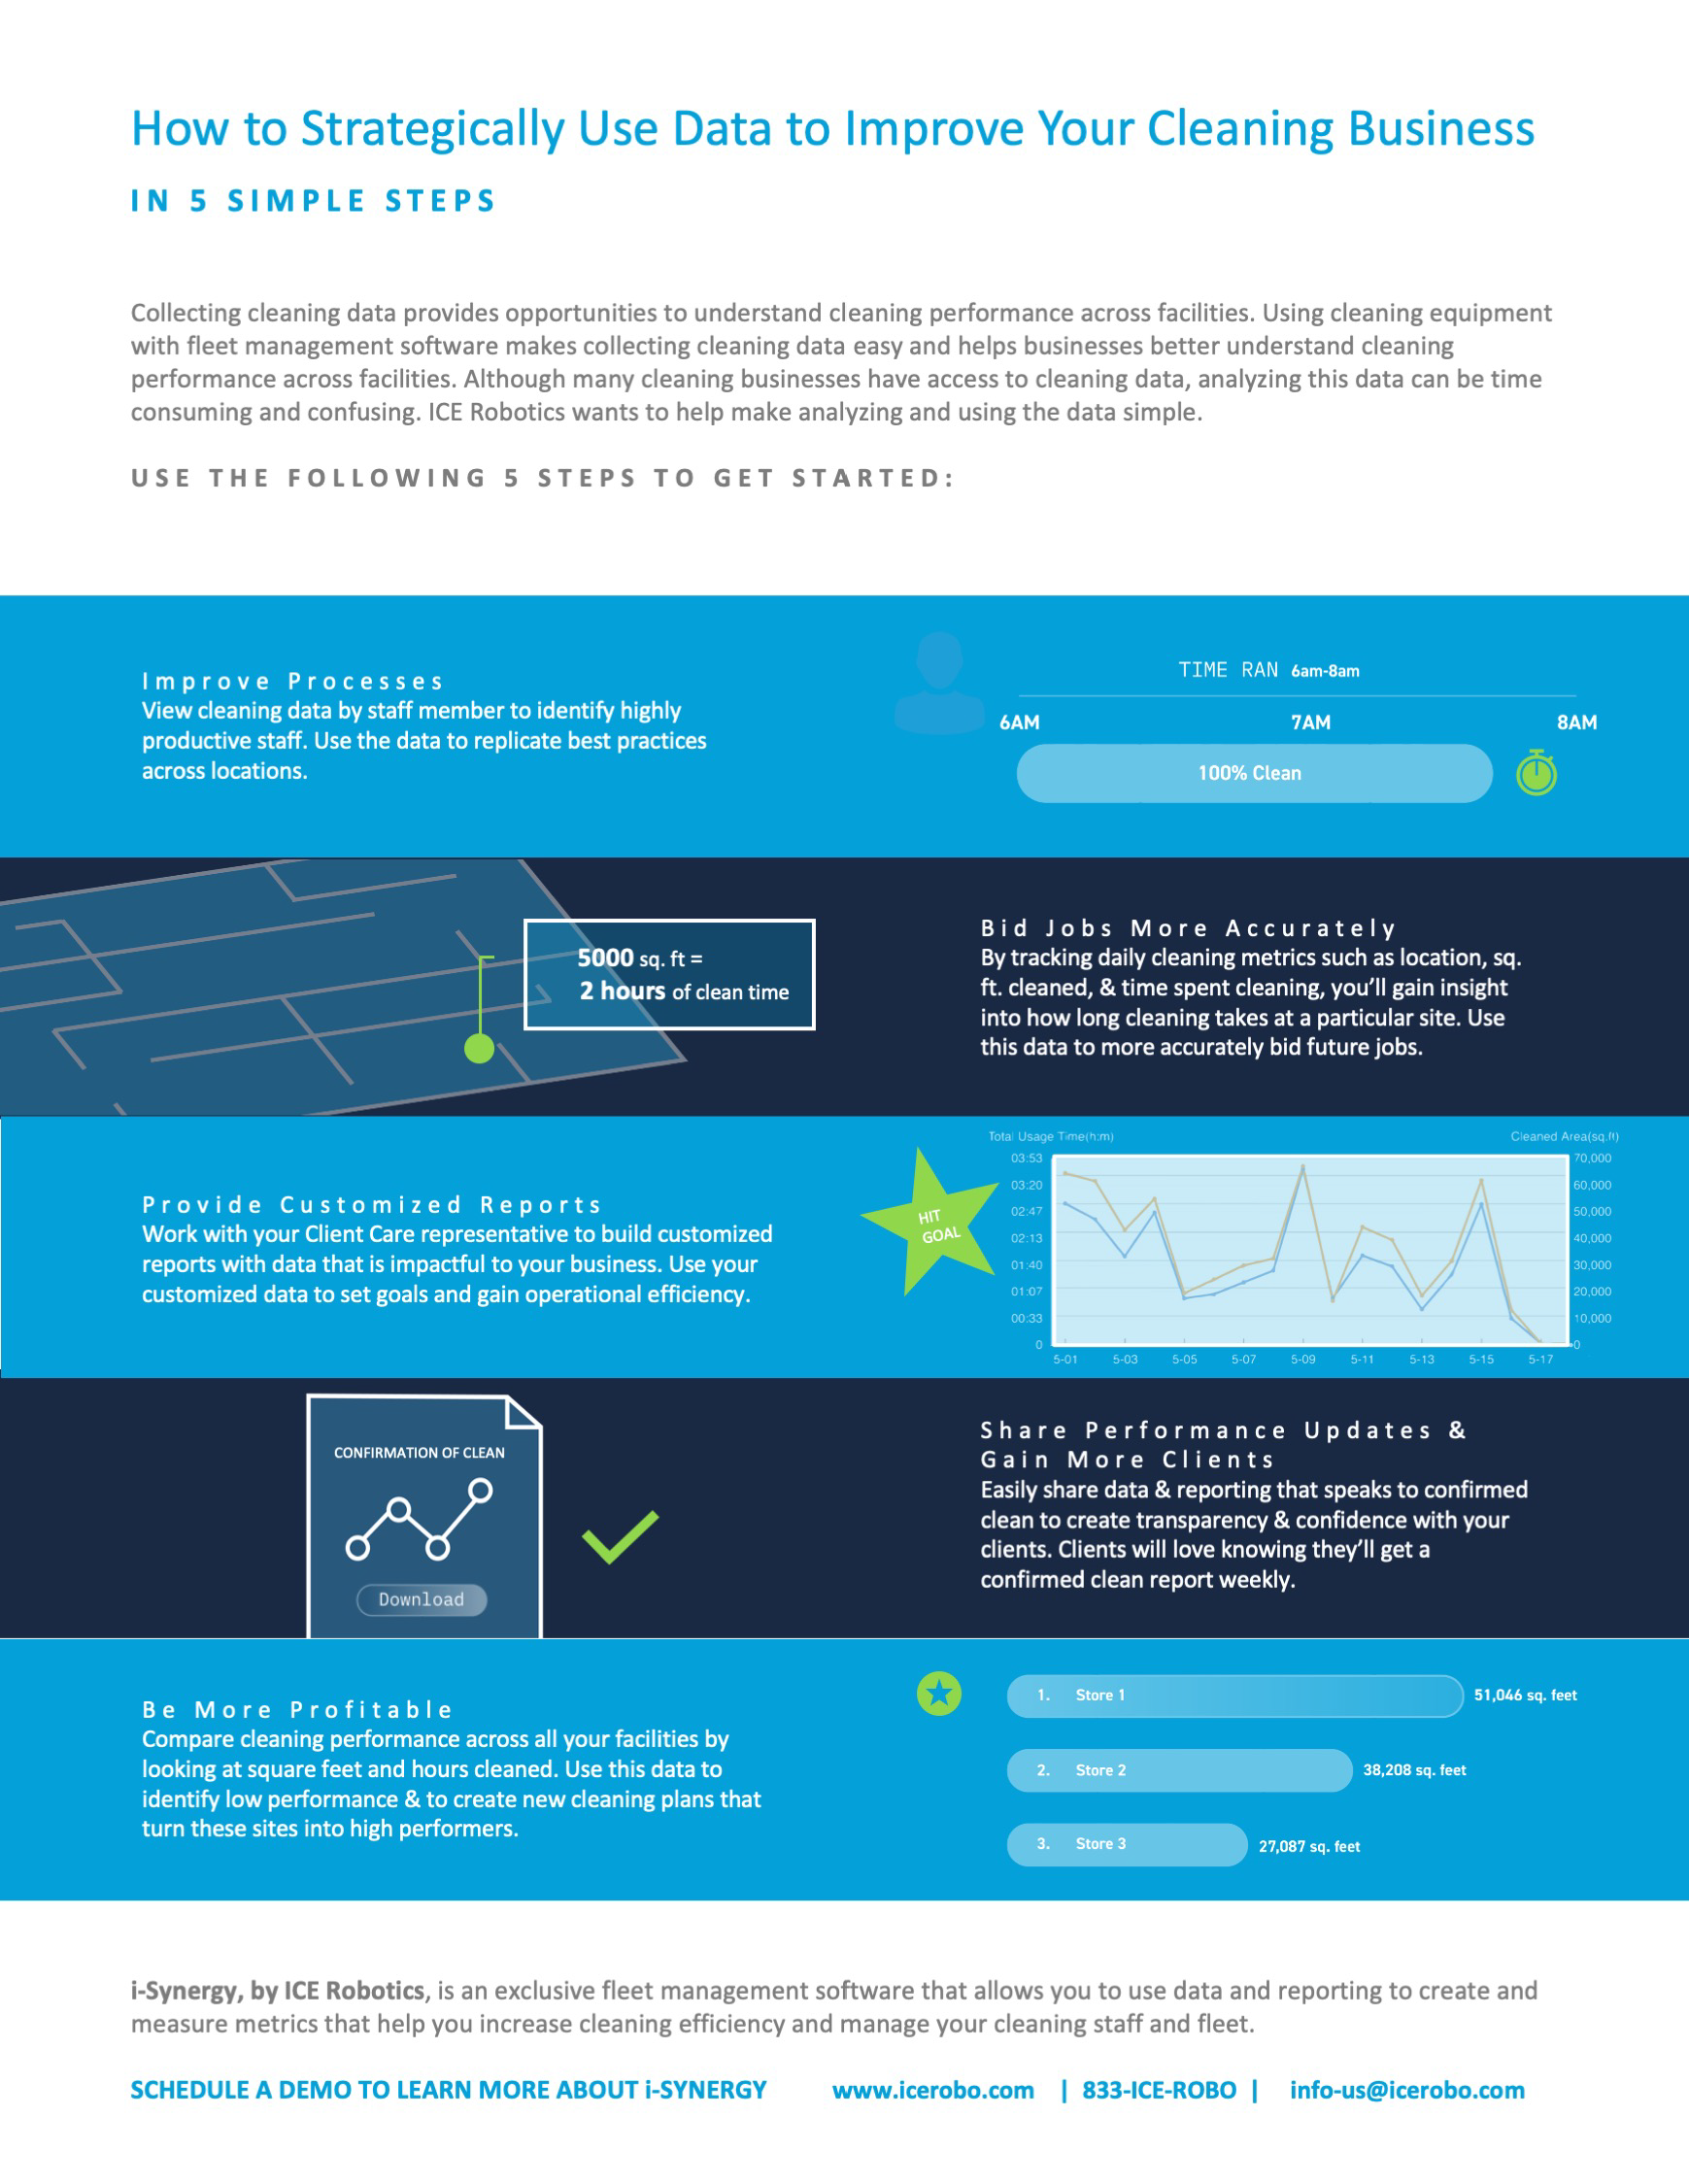 How to Use Data Strategically Infographic